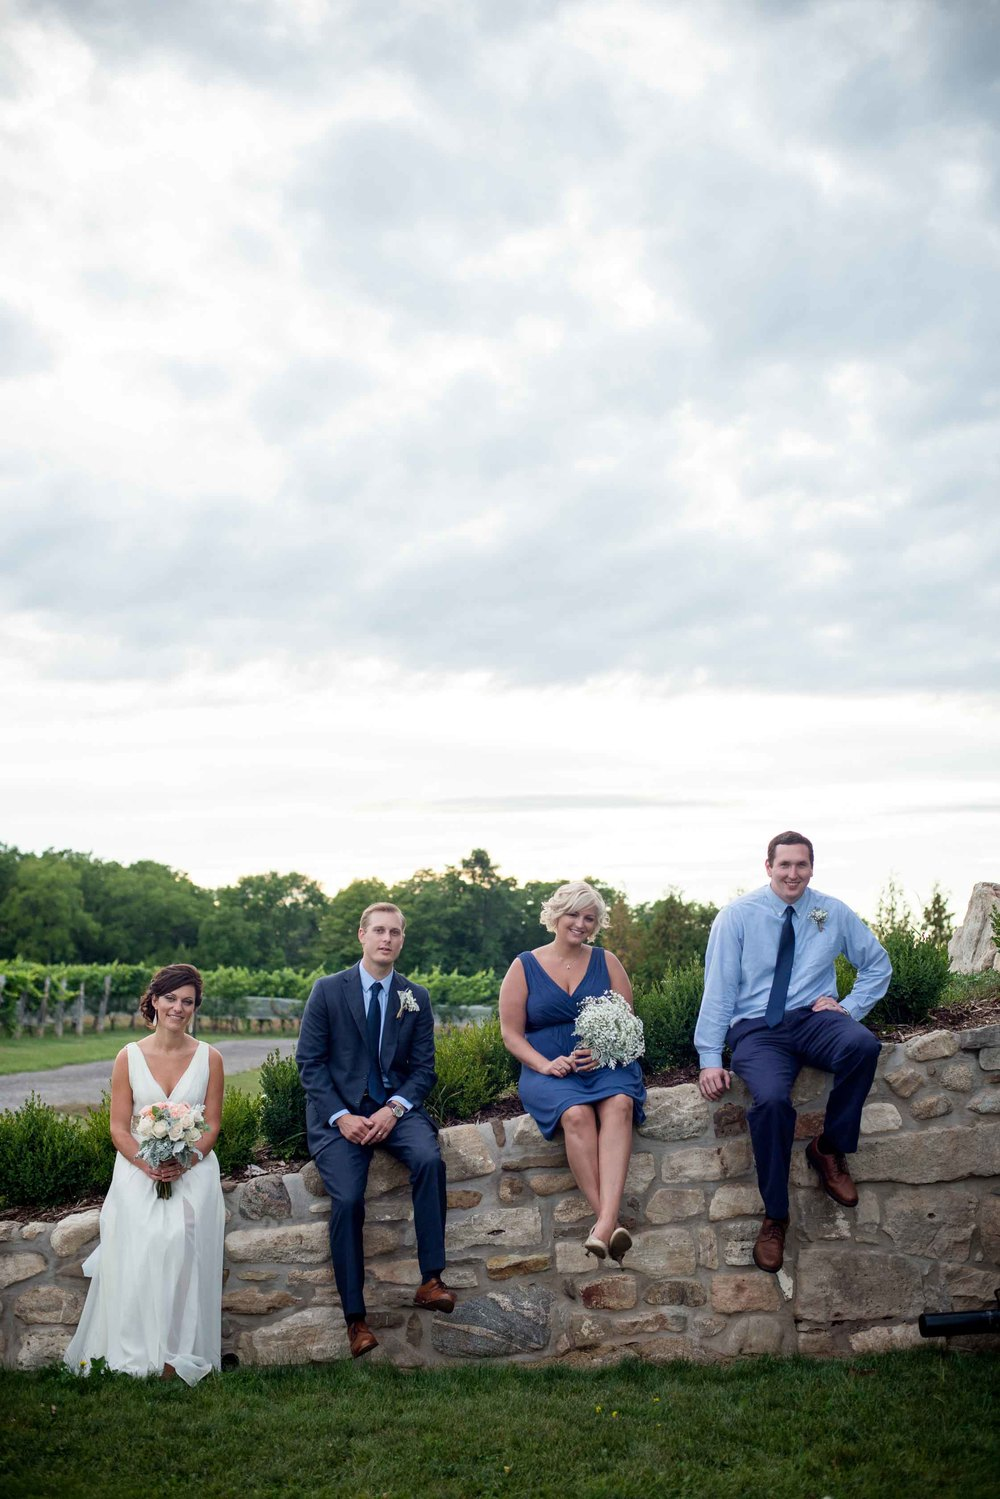 Sher and Brian Wedding by Sugar Photo Studios (247 of 322).jpg